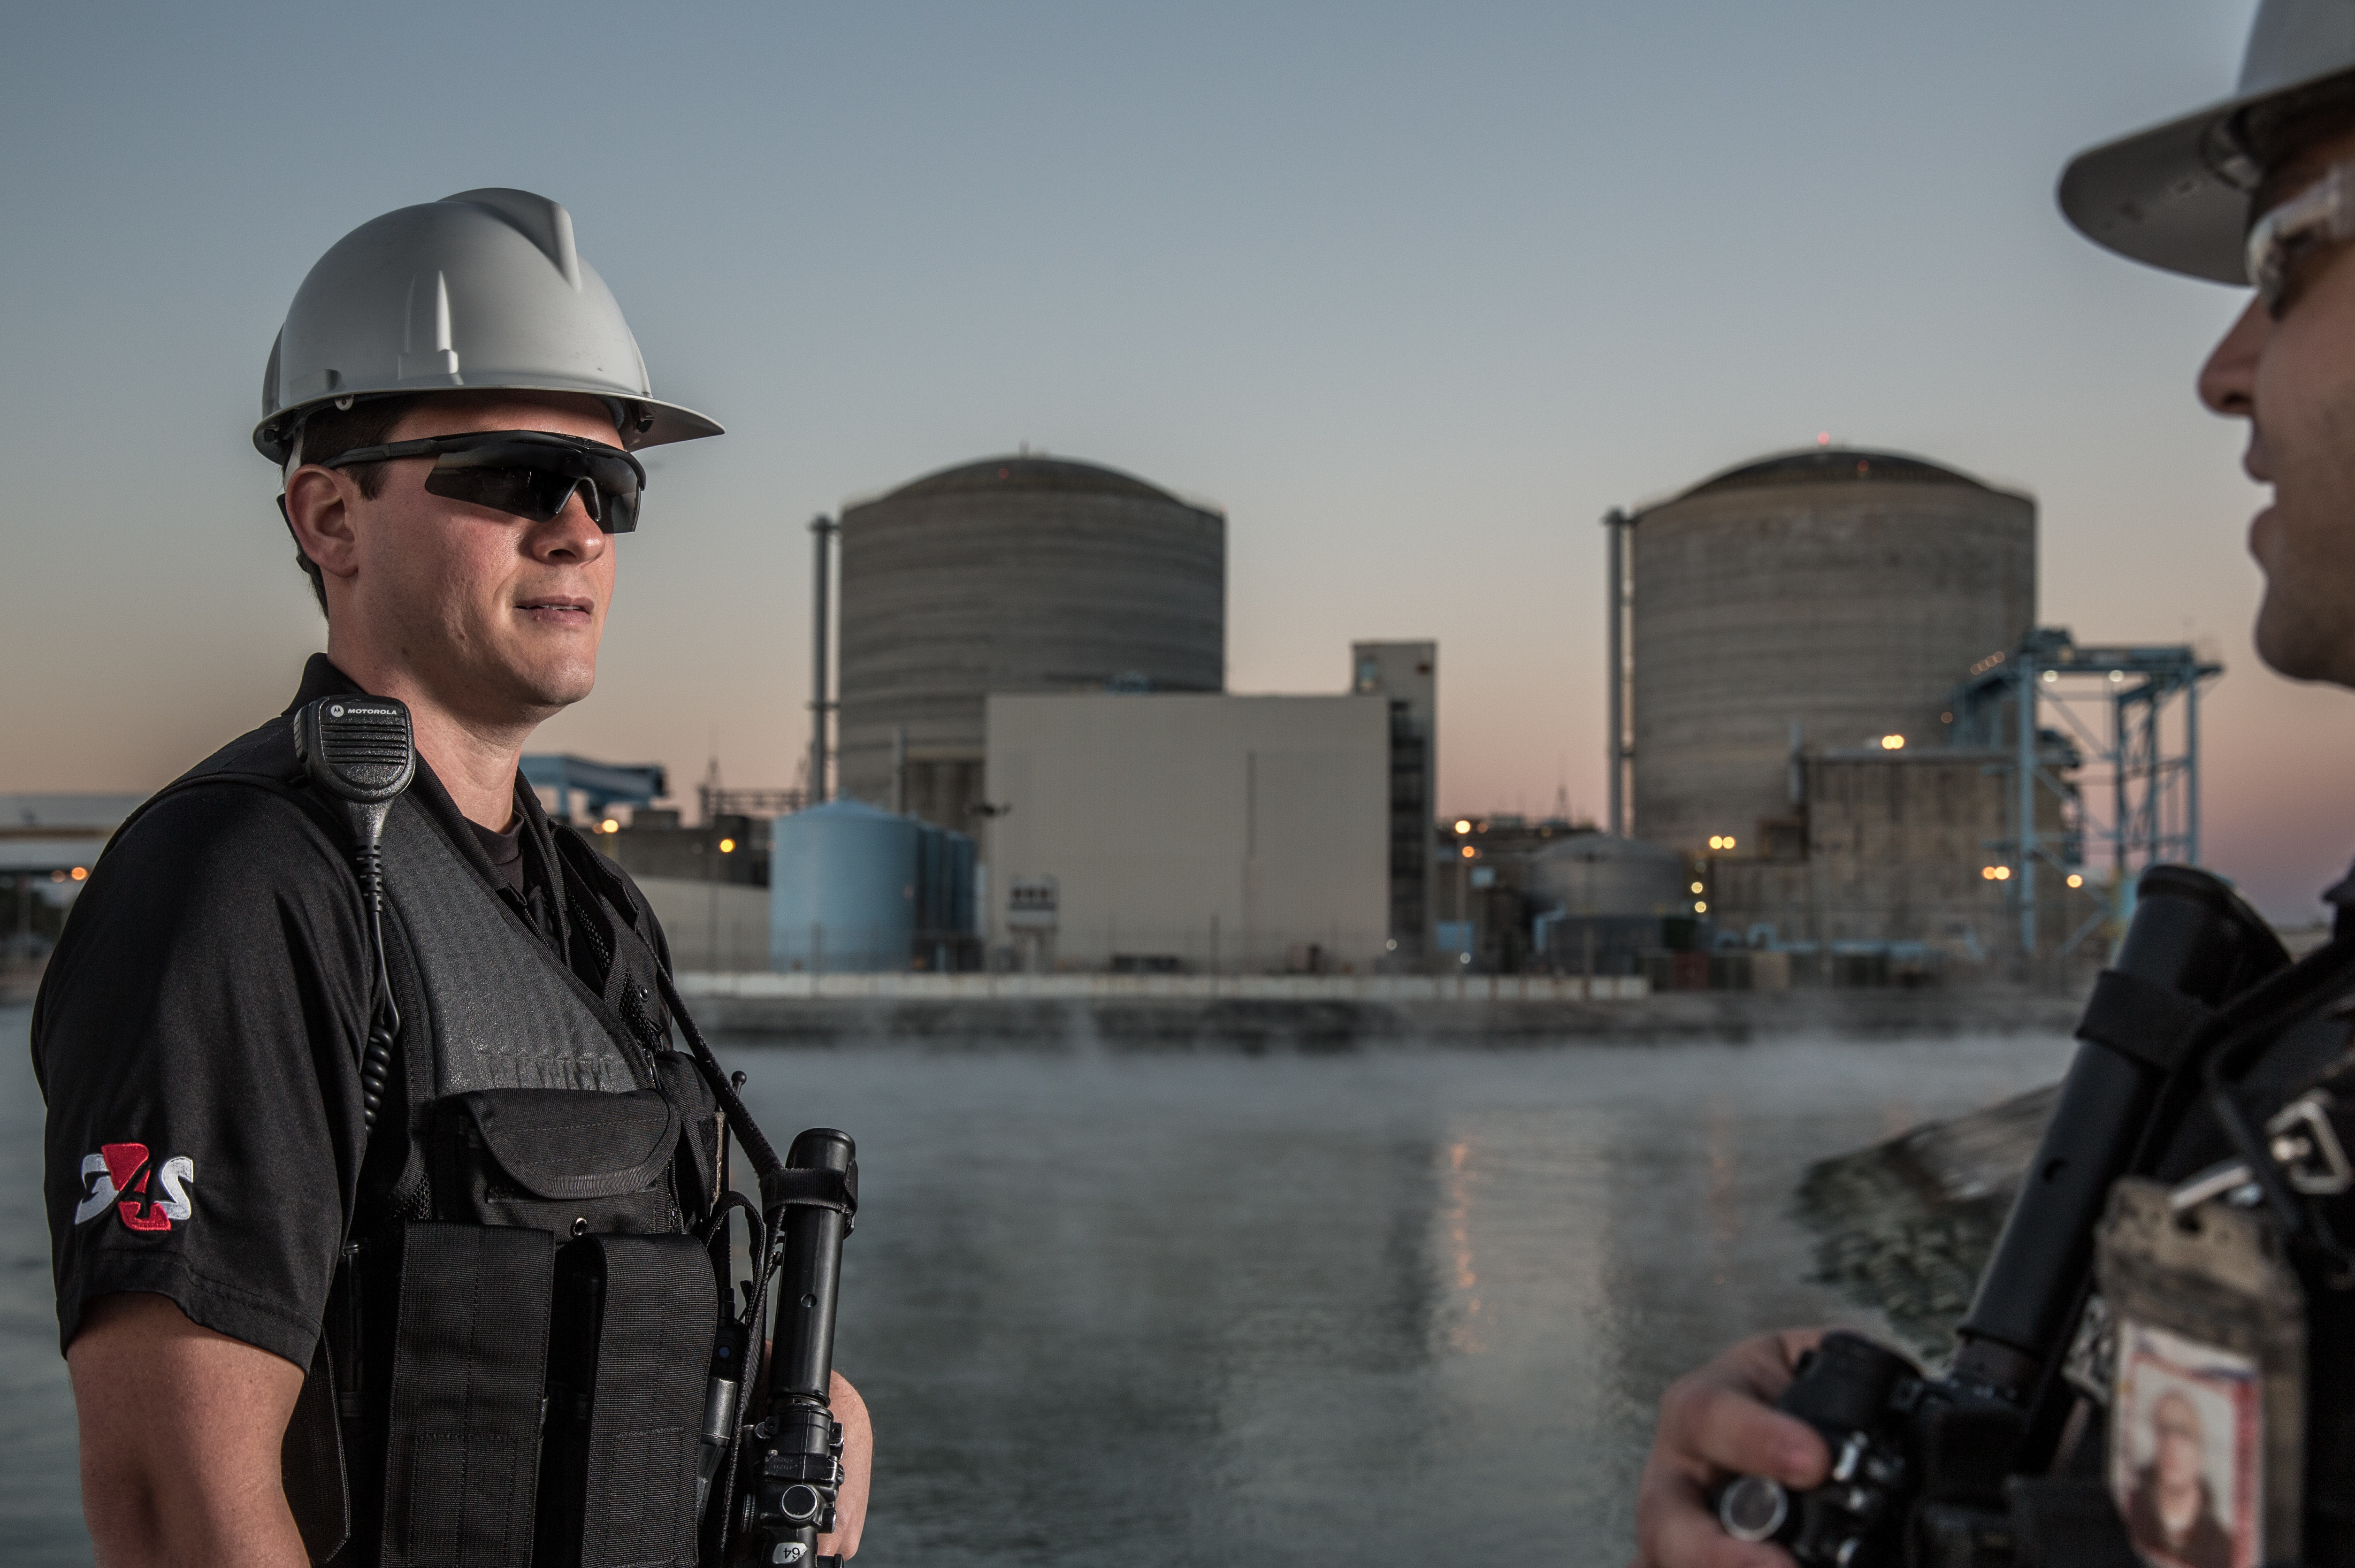 Security Patrols at US Nuclear Site.